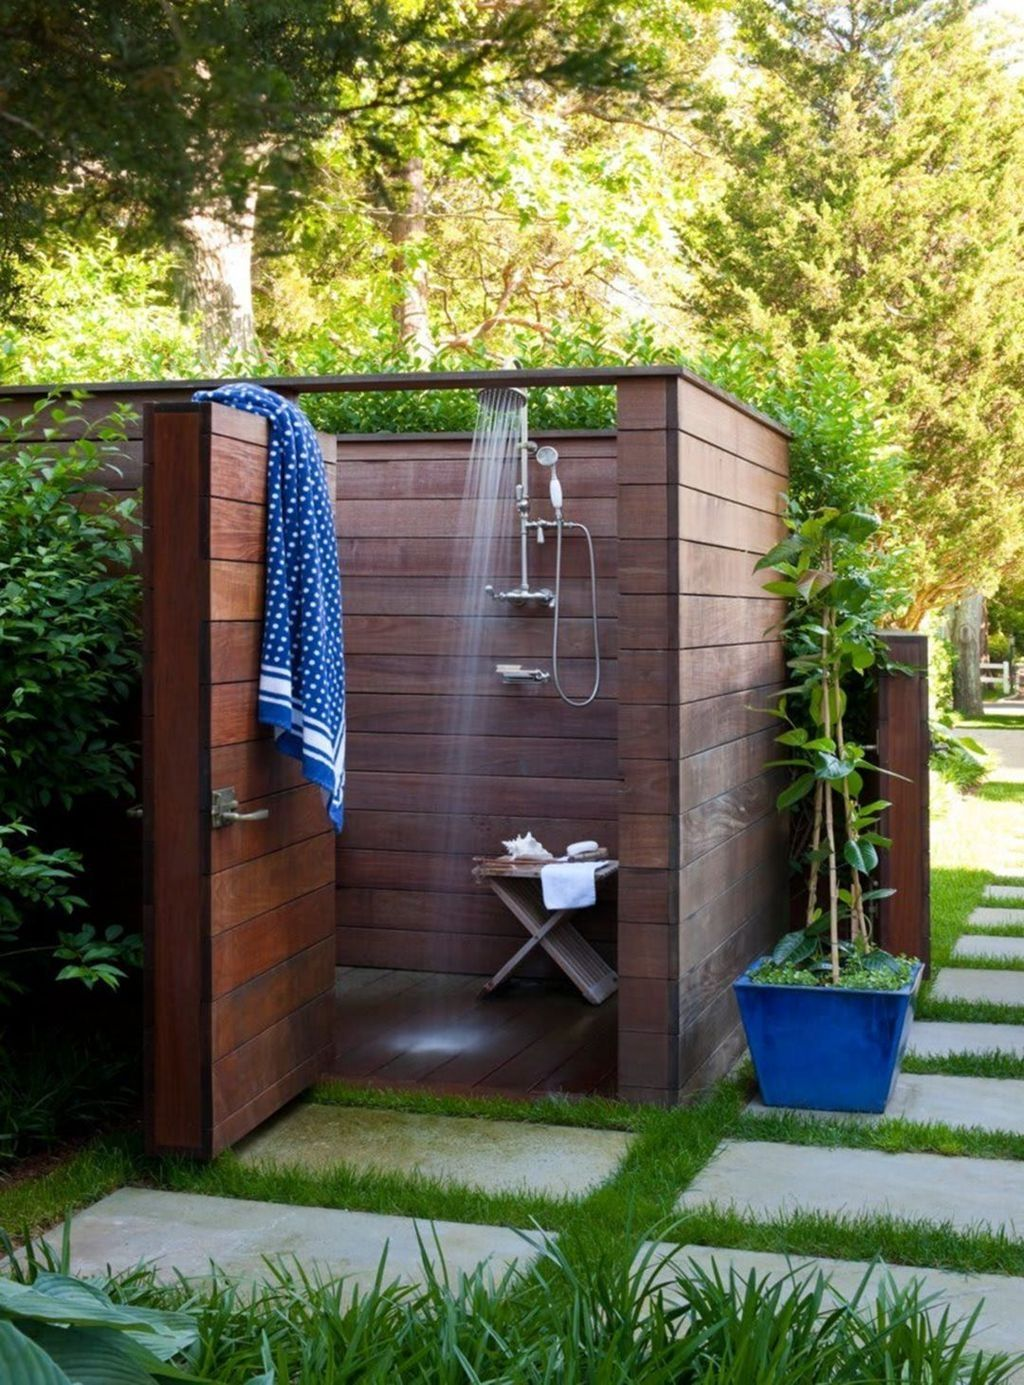 20 Spectacular Outdoor Bathroom Design Ideas That Feel Like A Vacation Outdoor Bathroom Design Garden Shower Outdoor Shower